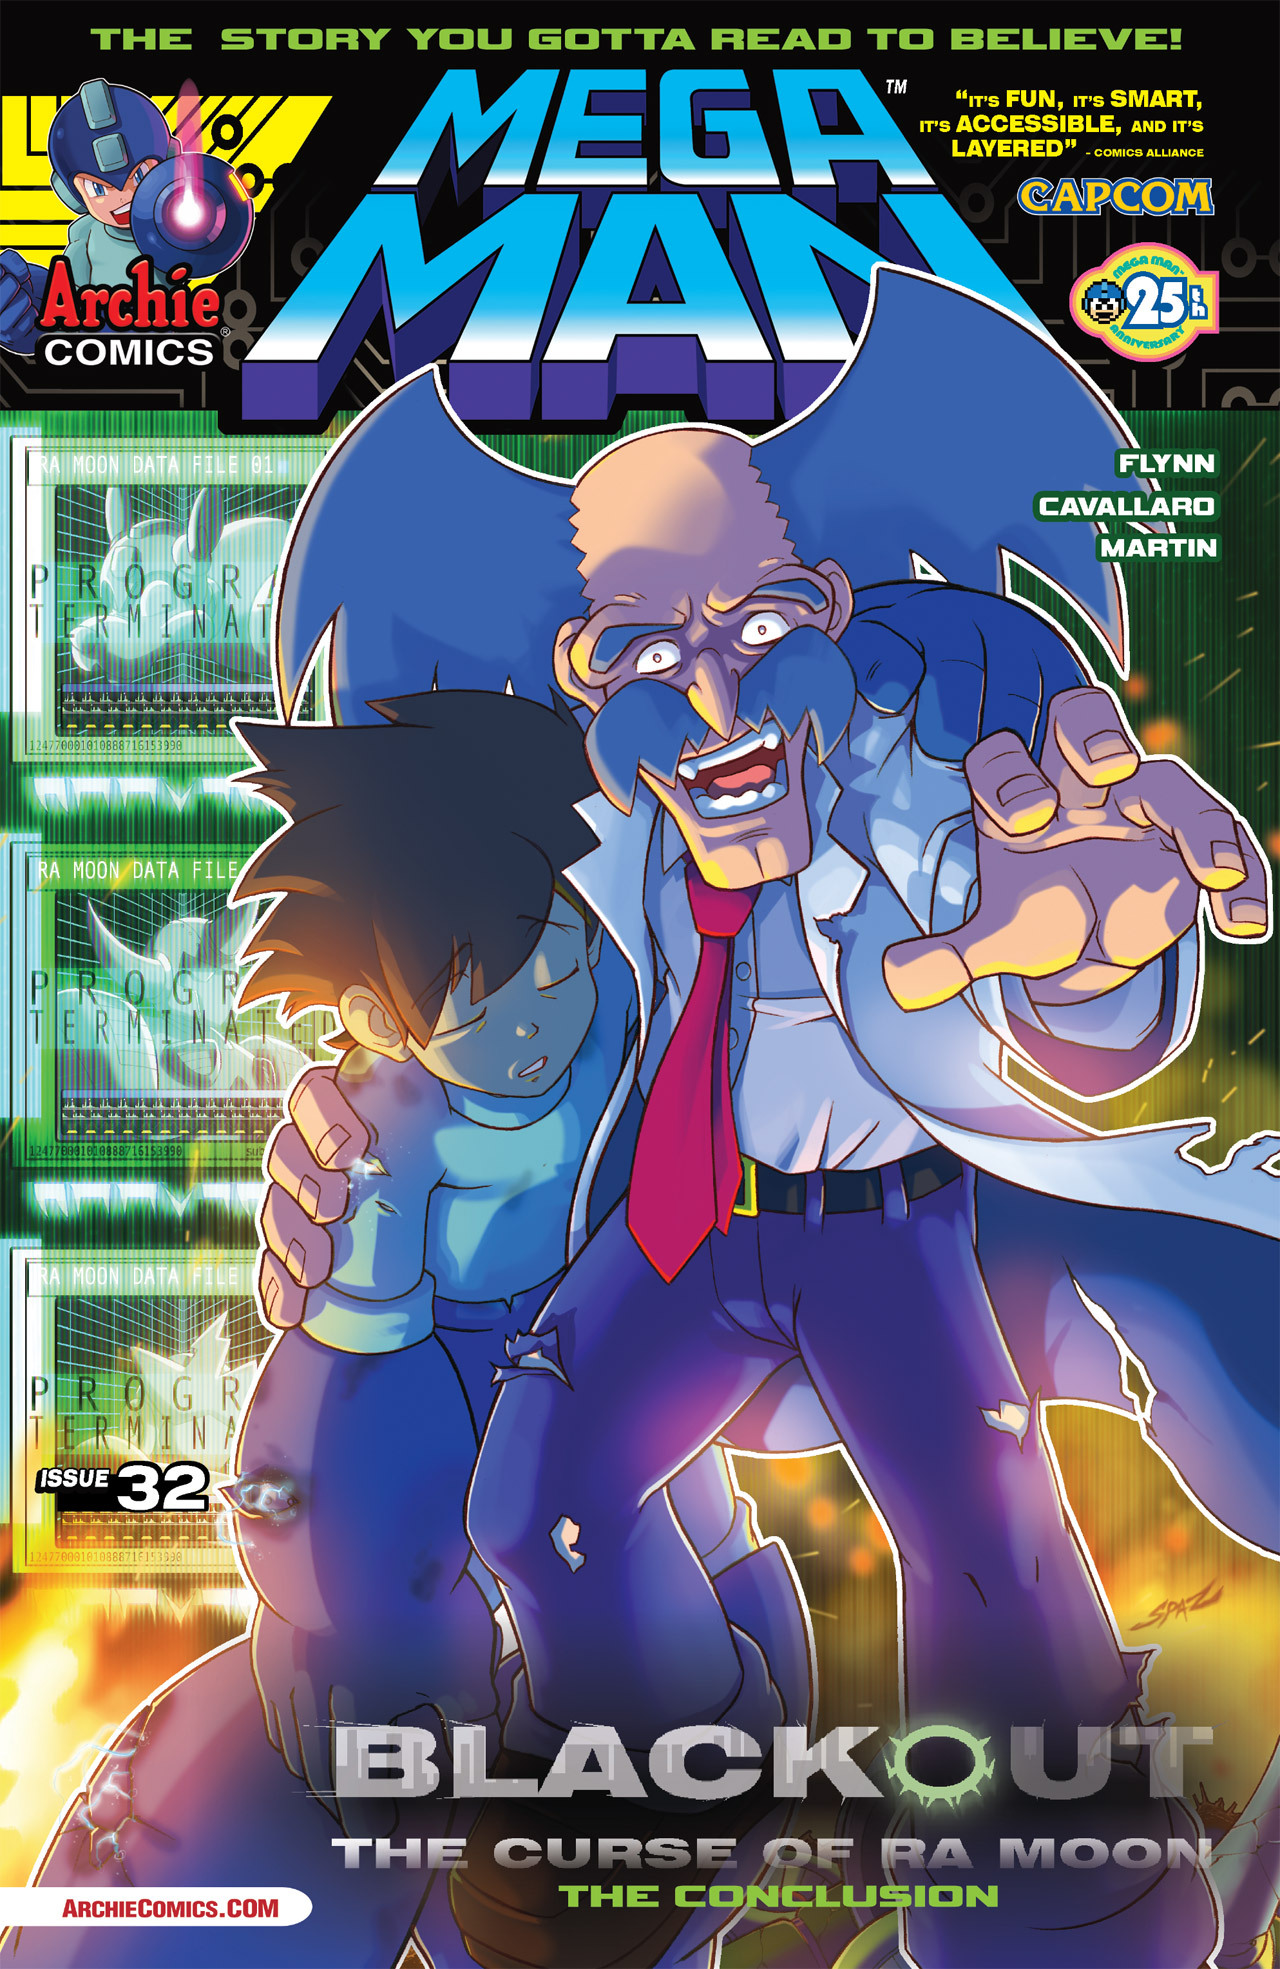 Mega Man Issue 32  Archie Comics